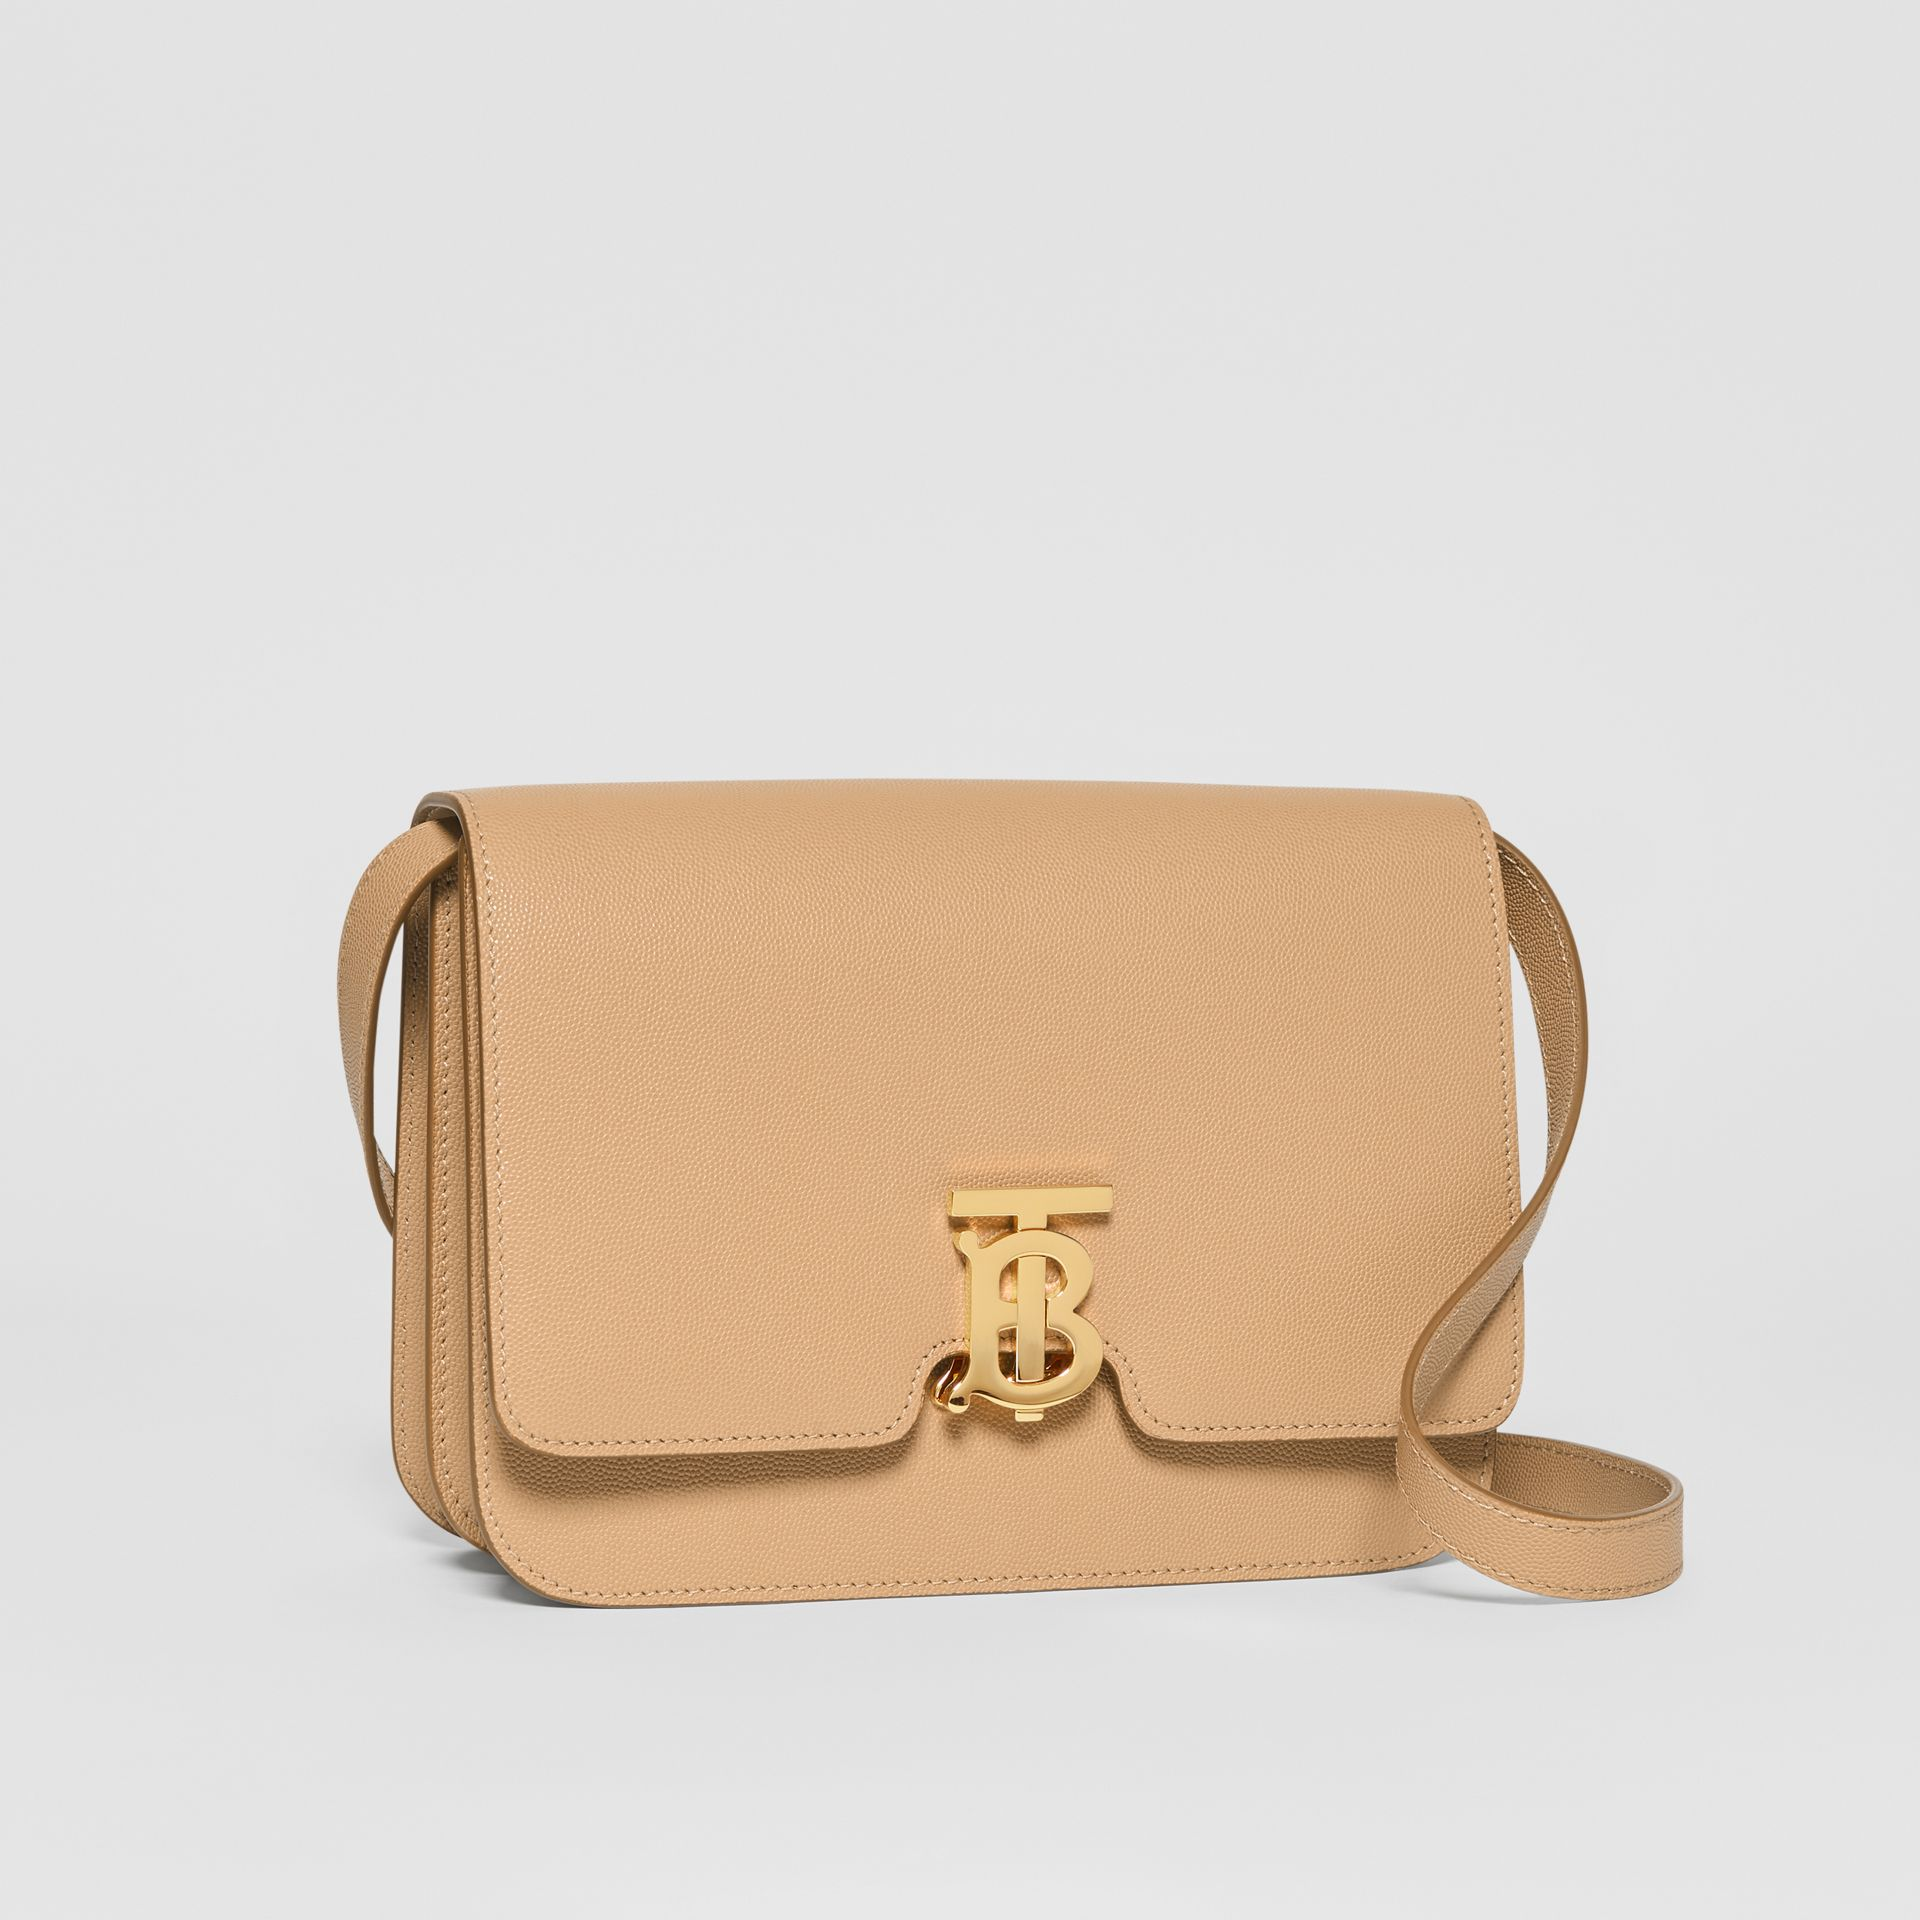 Medium Grainy Leather TB Bag in Archive Beige - Women | Burberry Canada - gallery image 6